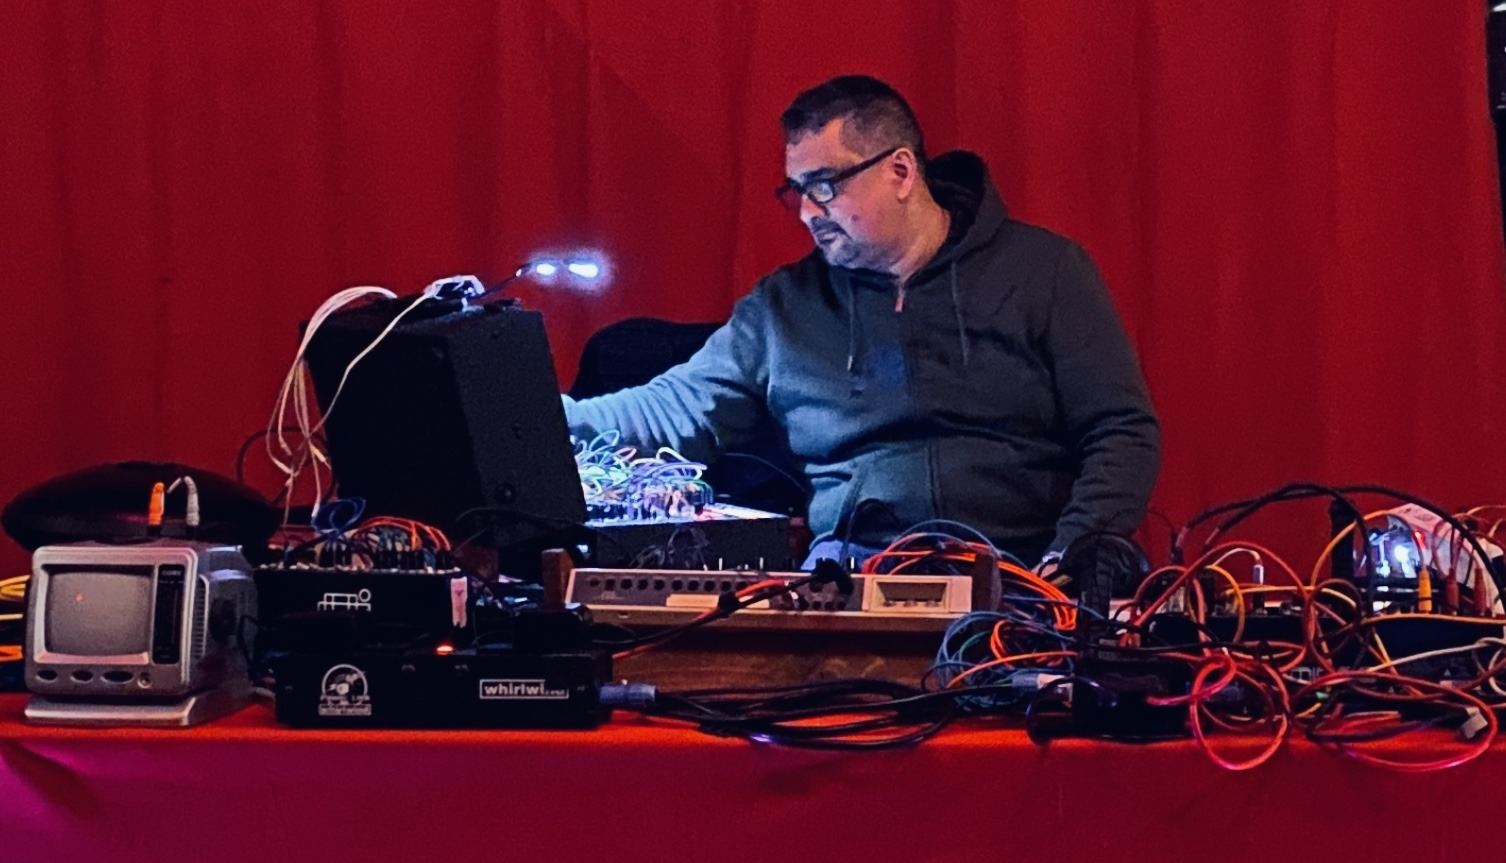 Abe Duque in the Ambient Lounge at Cityfox Live 2020